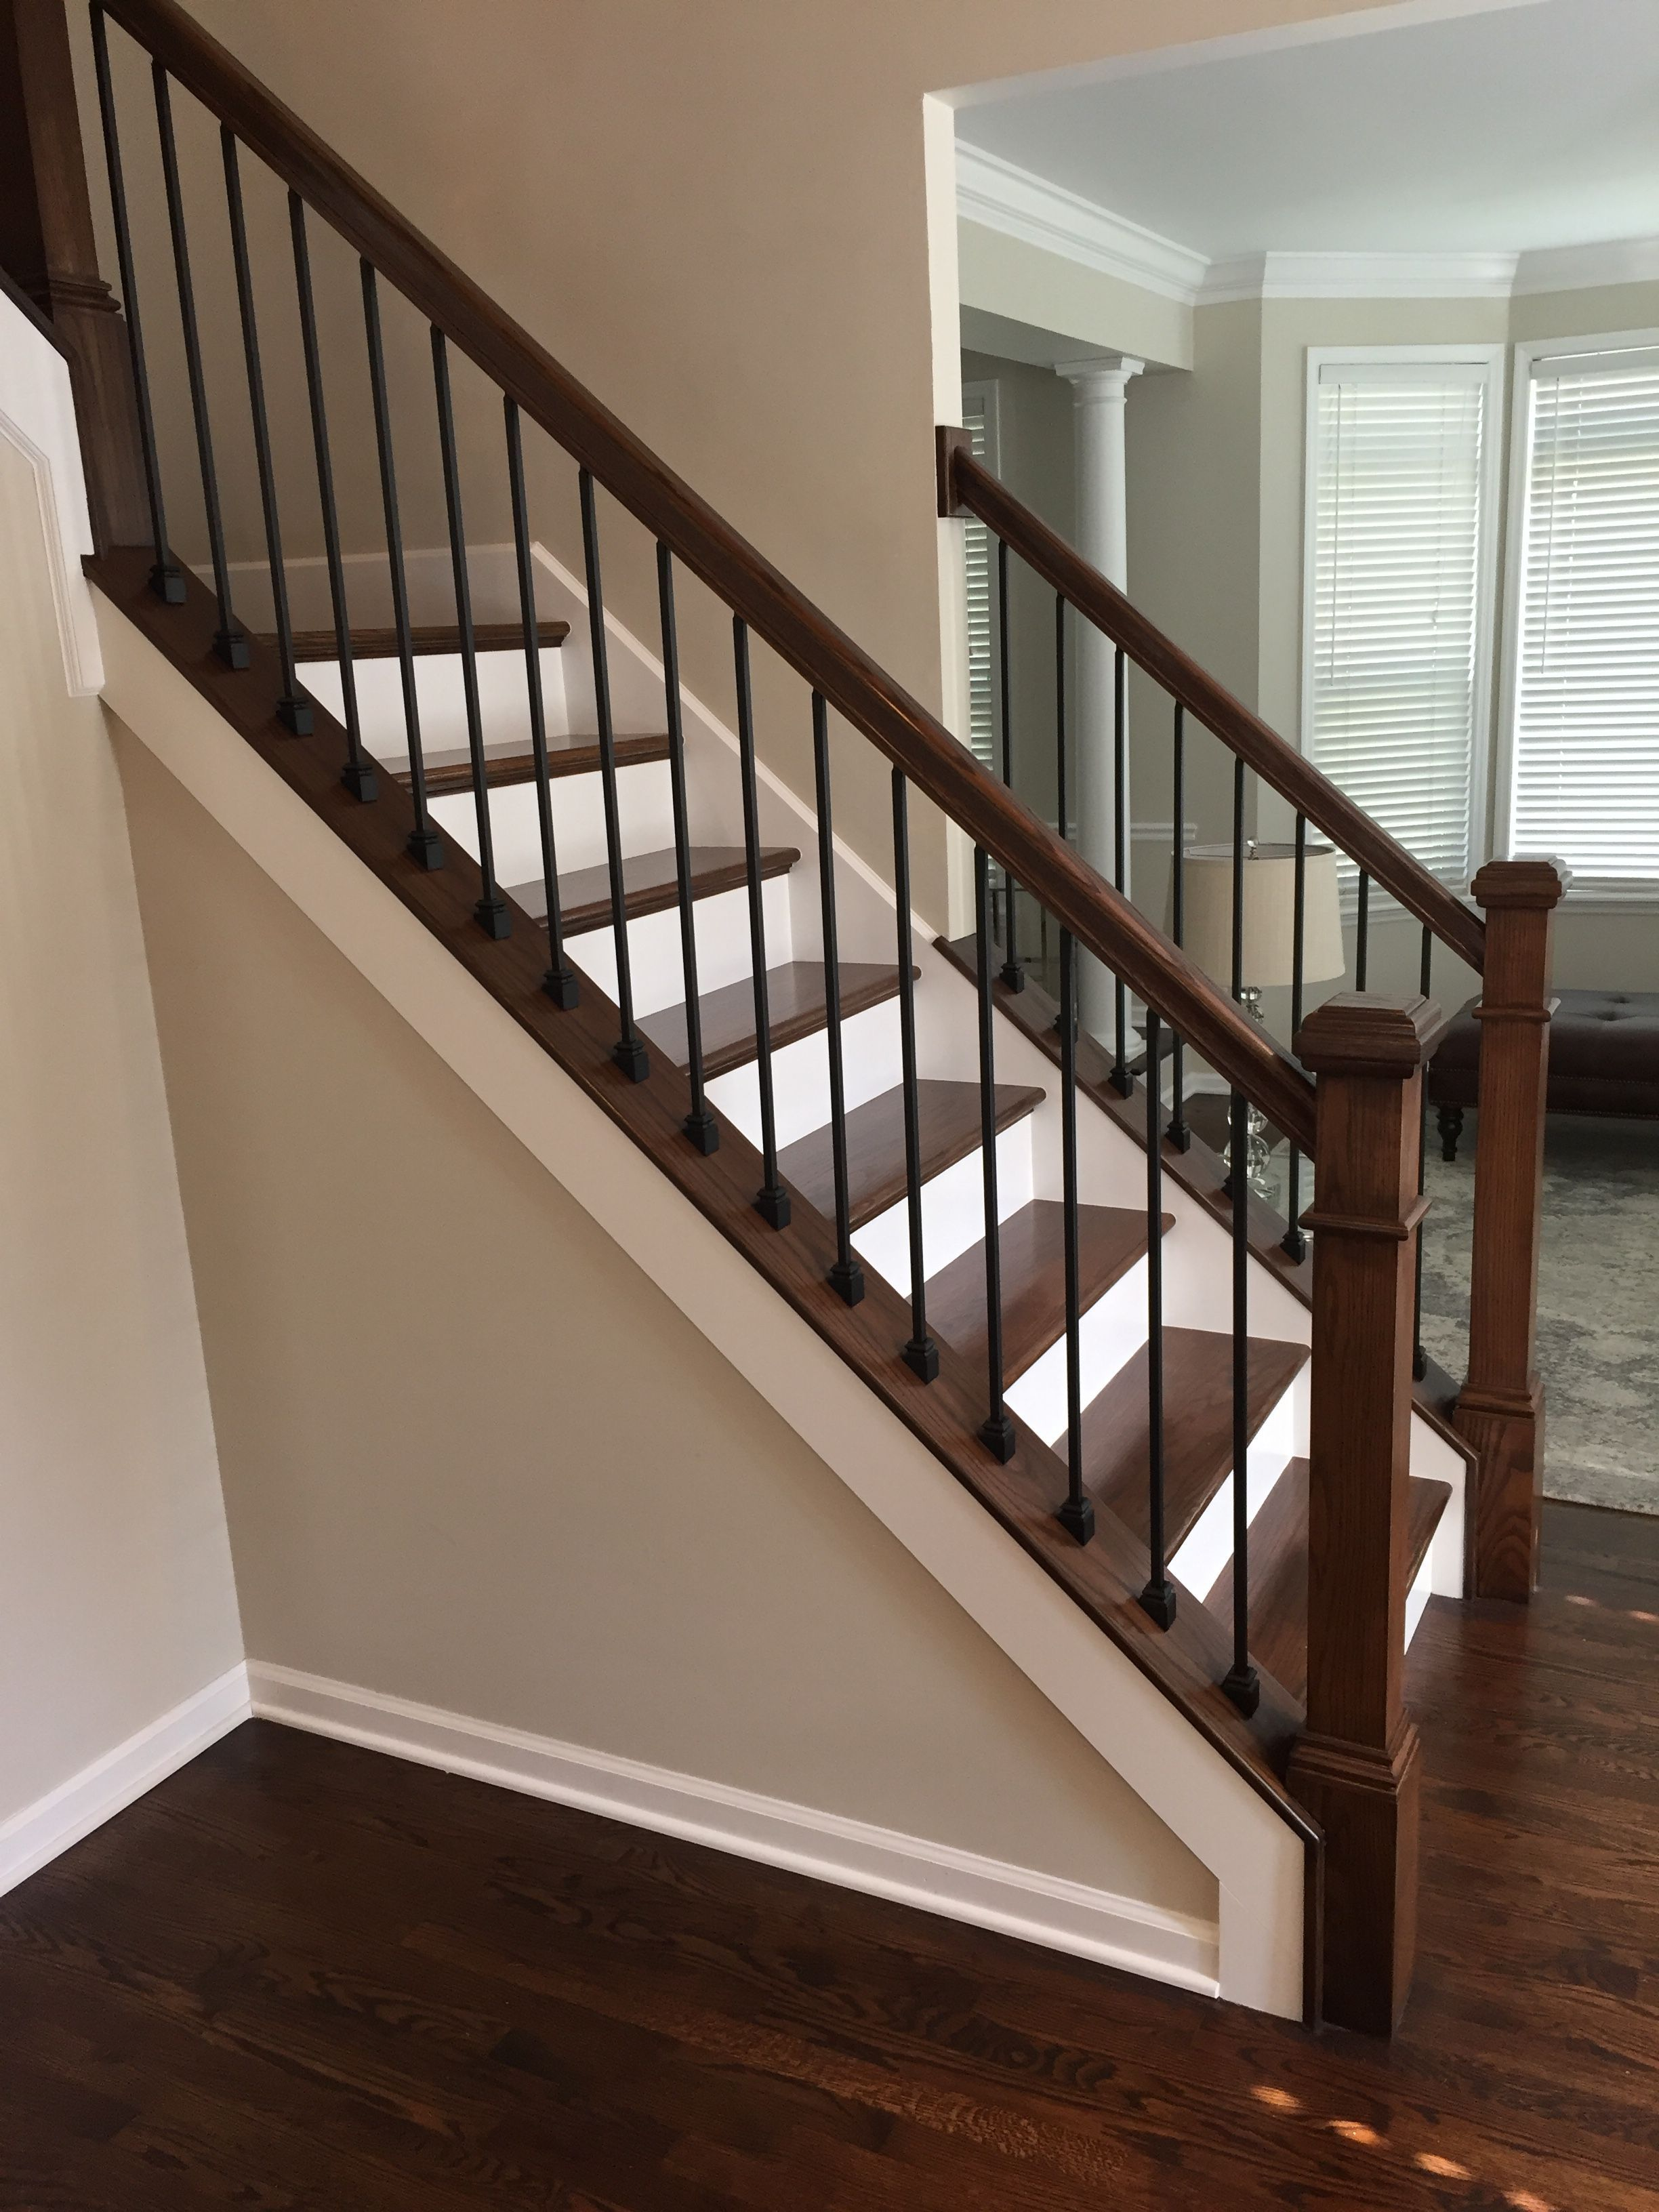 Pin By Georgina Thomson On Villa Linda House Ideas In 2020 Stair Railing Makeover Interior Stair Railing Staircase Makeover